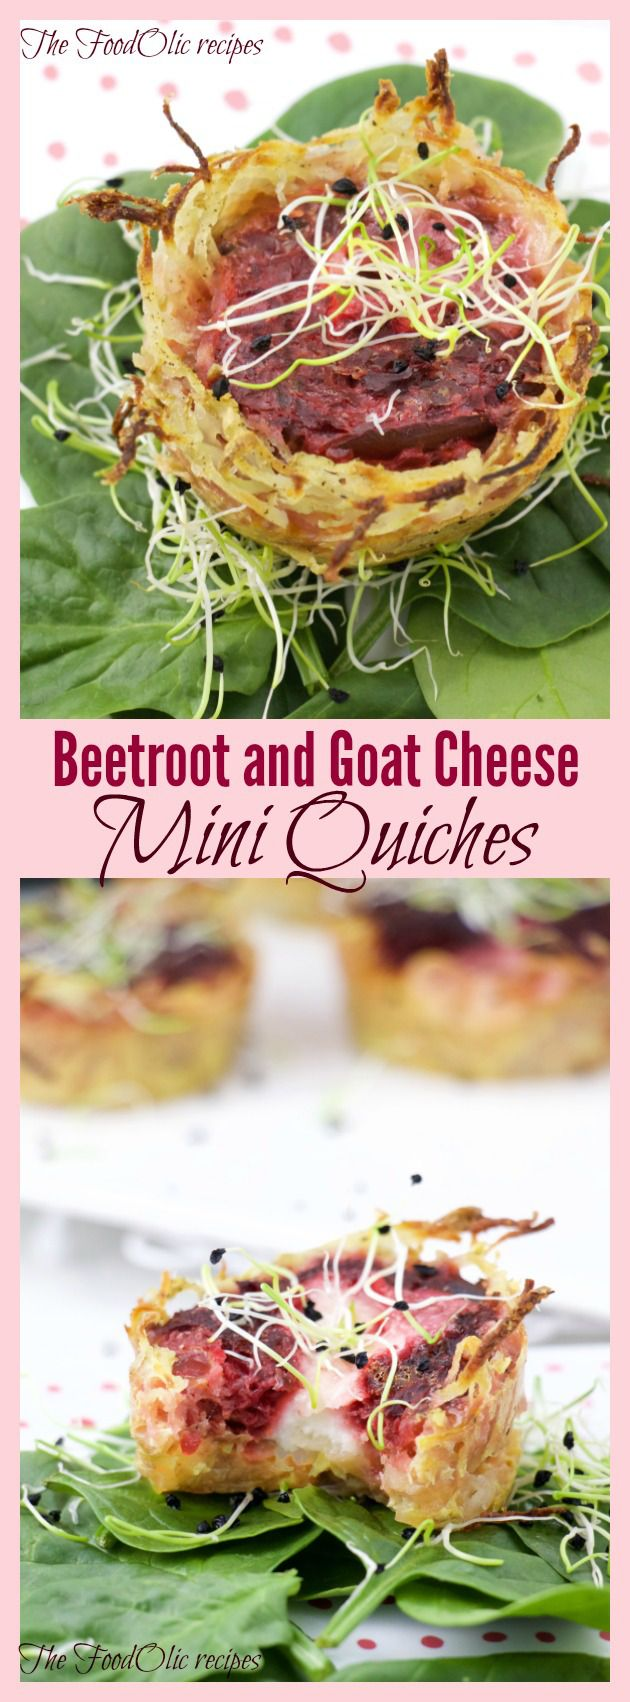 Finger bite beet and goat cheese quiches with a potato base. #snack #quiche #eggs